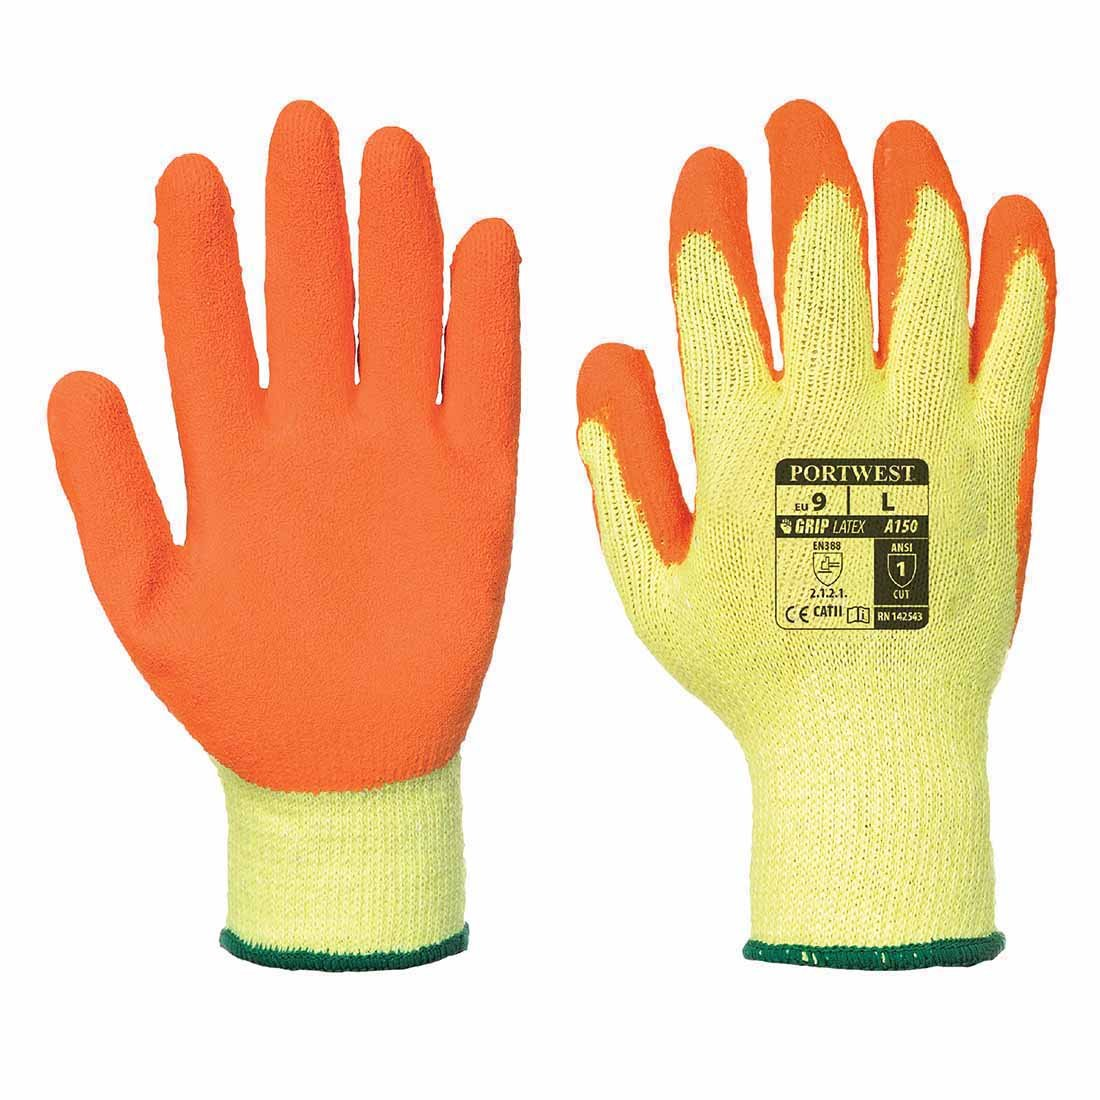 12 PAIRS PORTWES LATEX WORK GLOVES A150 S-XXL BLACK ORANGE GREEN (Medium, orange) Portwest